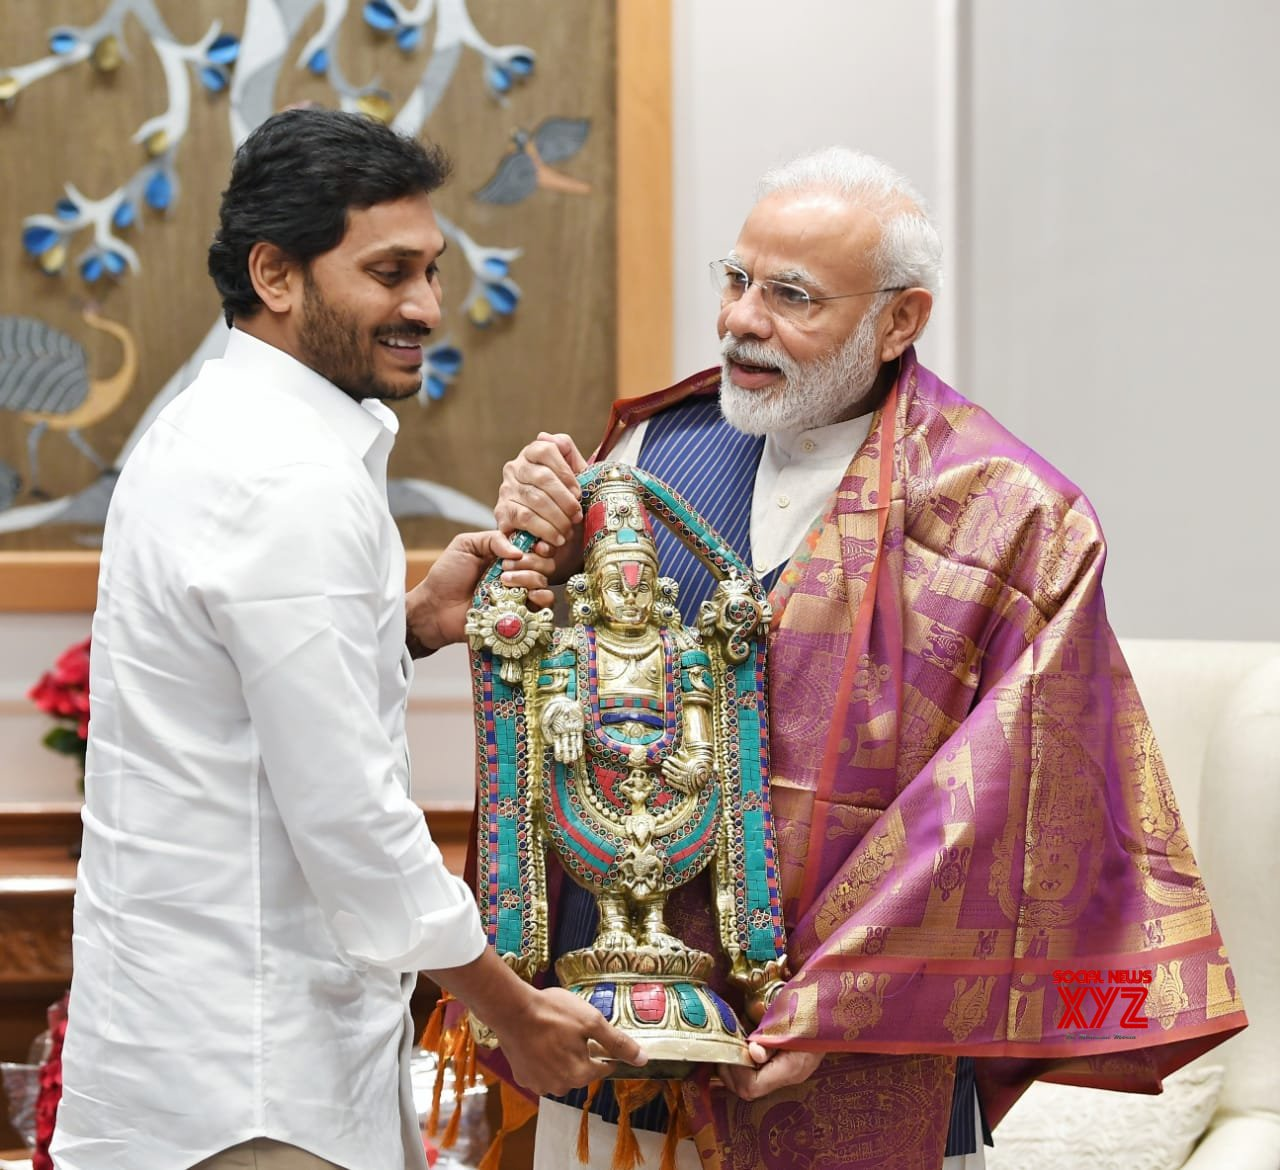 Andhra CM YS Jagan Met With The Prime Minister Narendra Modi At His Residence In New Delhi - Gallery